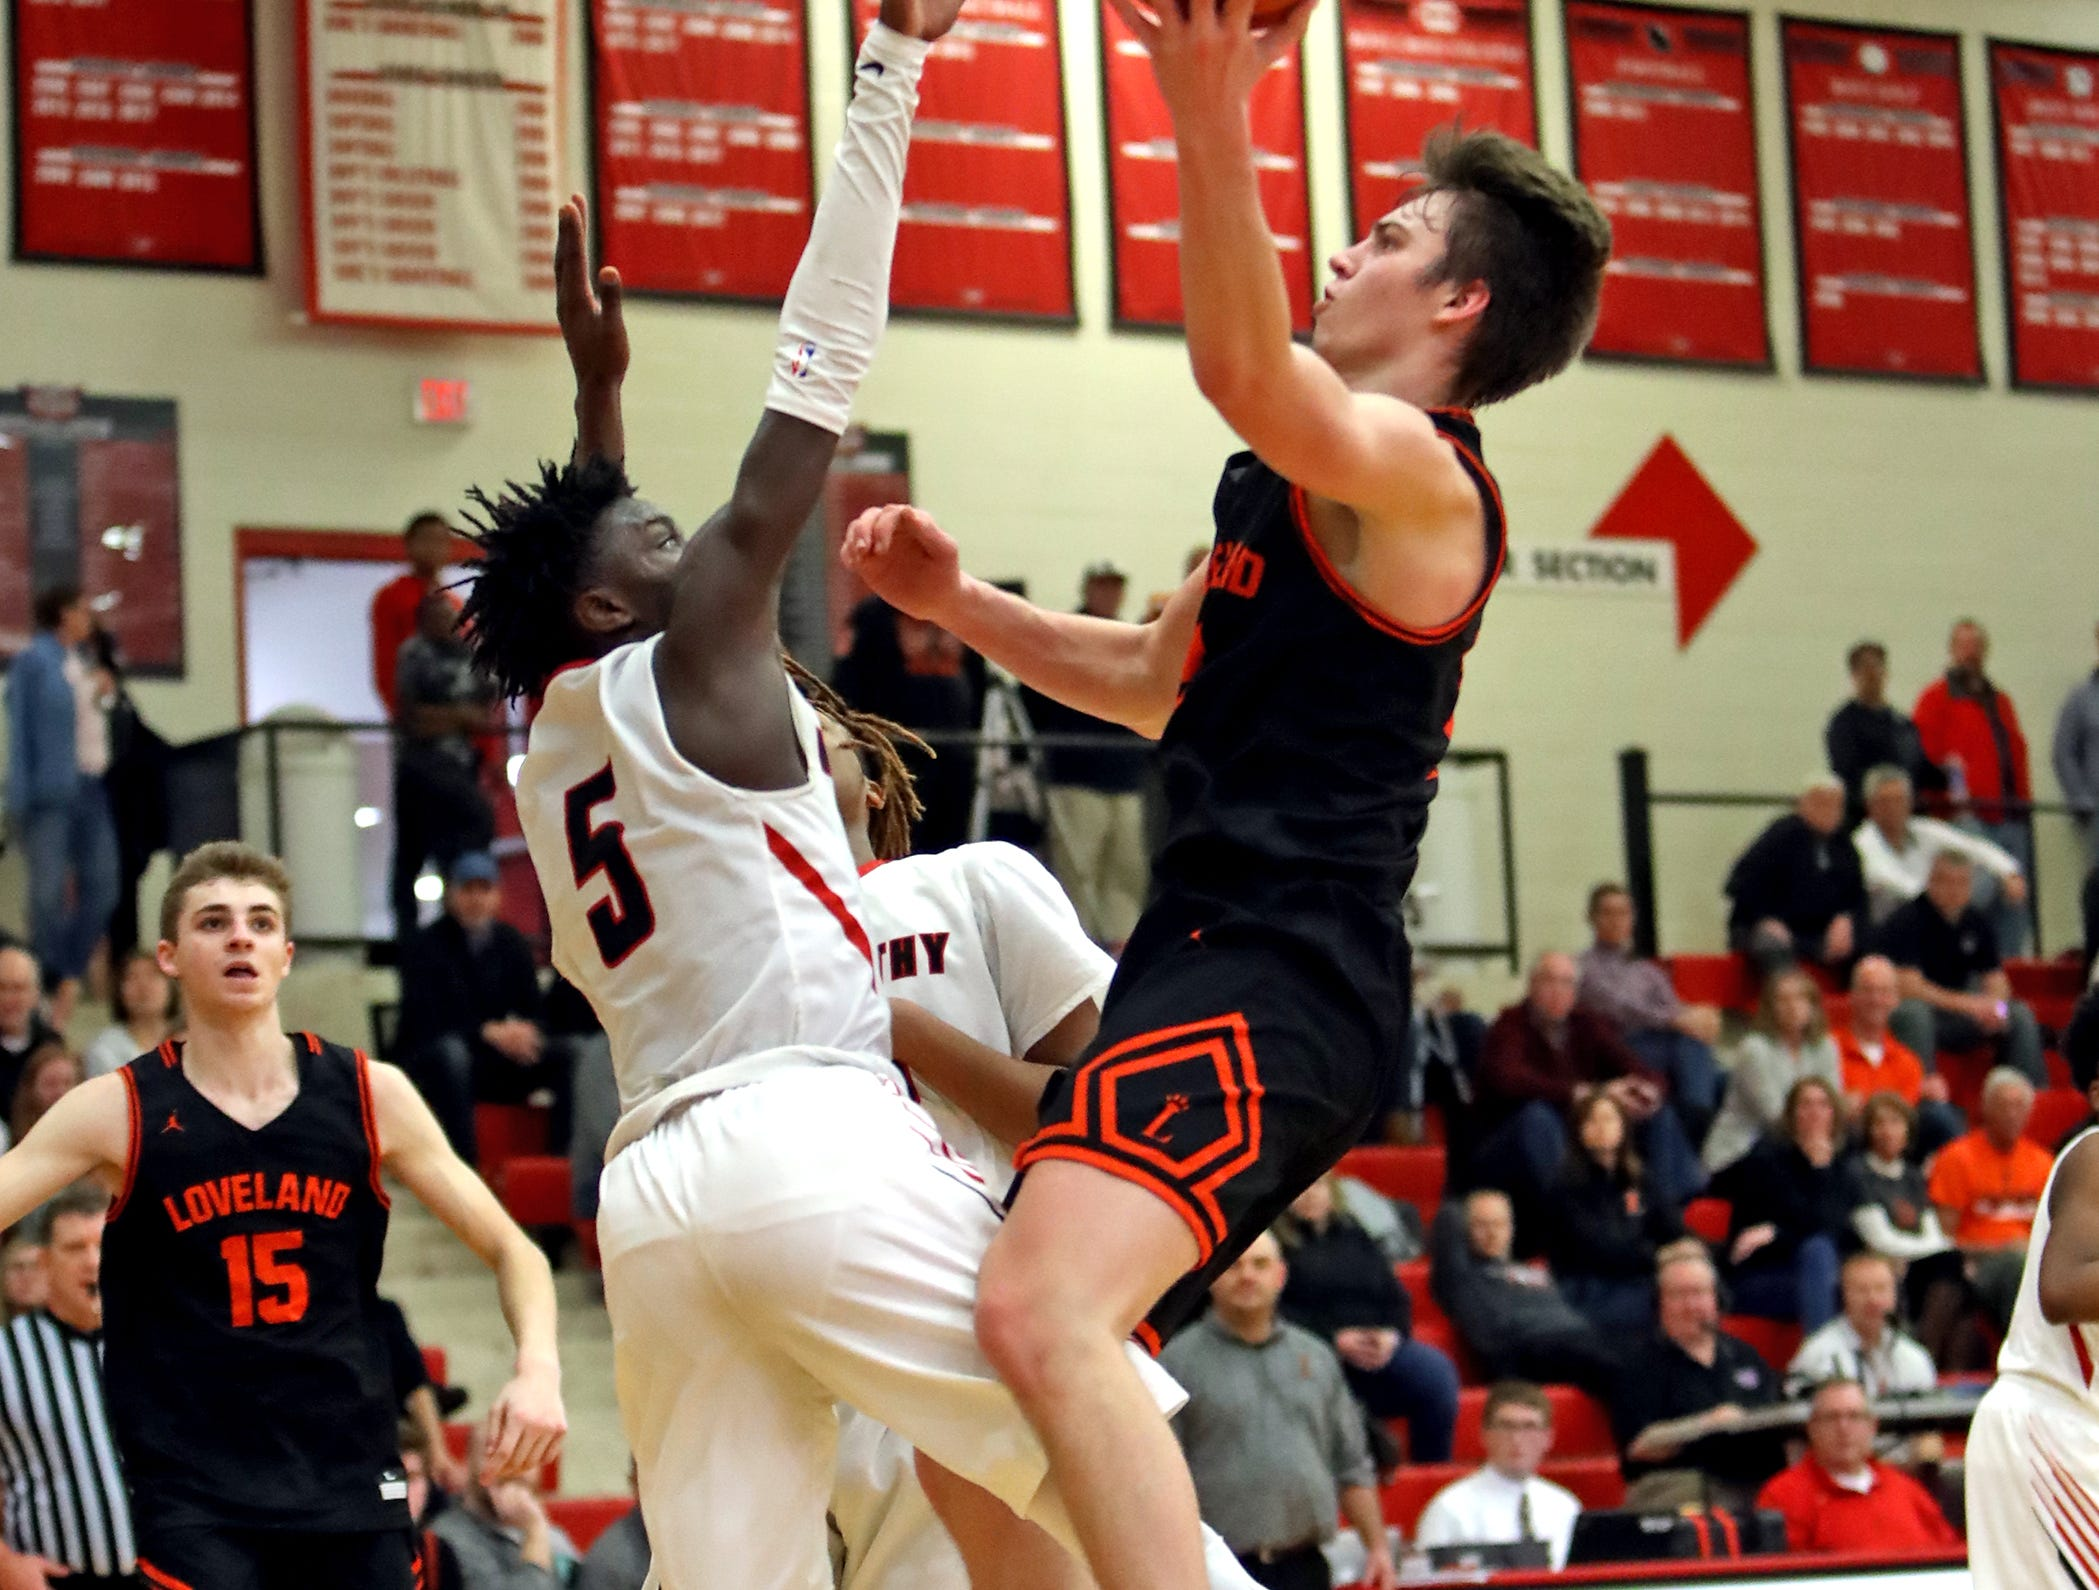 Loveland guard Jalen Greiser drives through the heart of the Owls defense and scores in the sectional playoffs at Lakota West High School Feb. 23, 2019. Mount Healthy defeated Loveland 62-57.